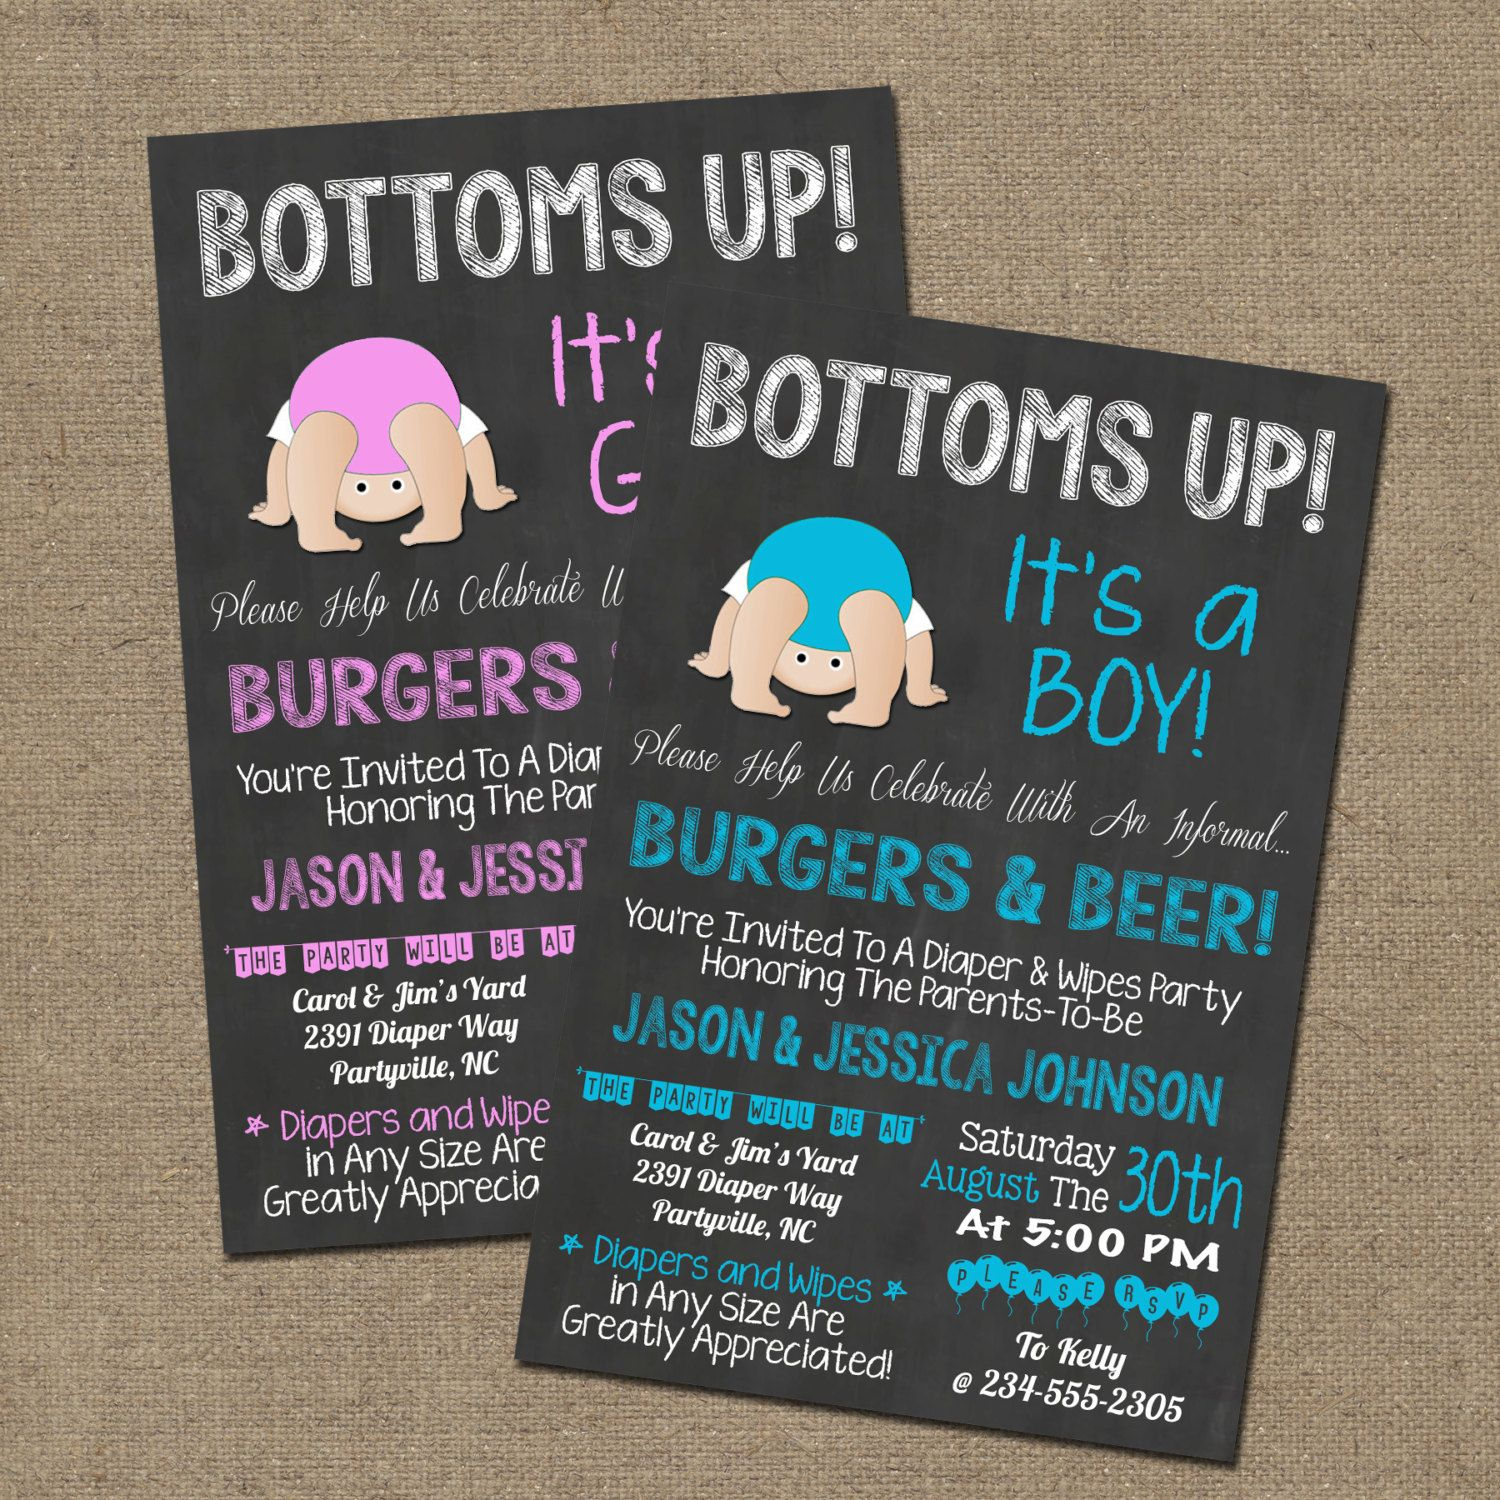 Bottoms Up Baby Shower Diaper Party Bbq By Worldofthought On